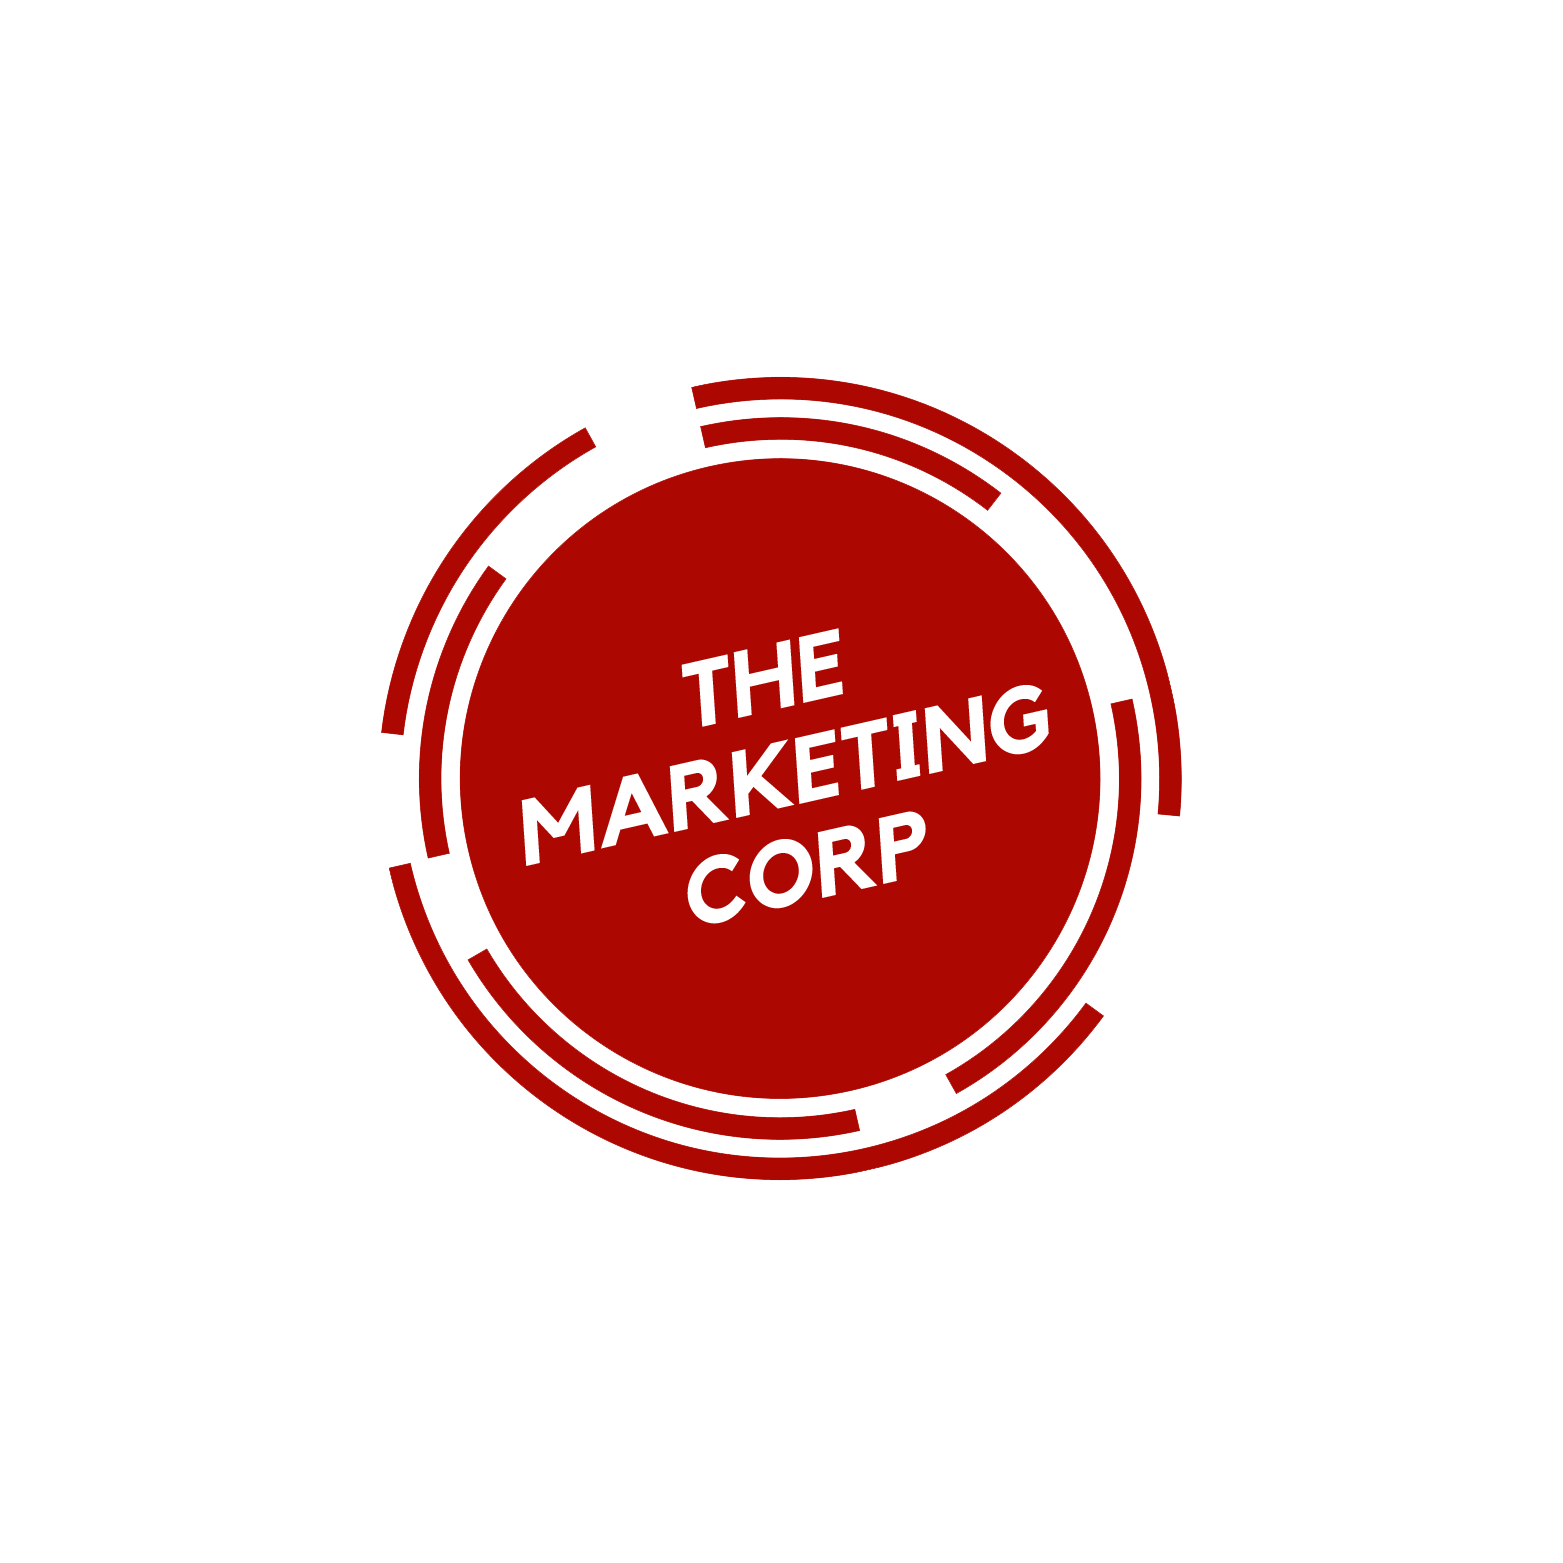 The Marketing Corp